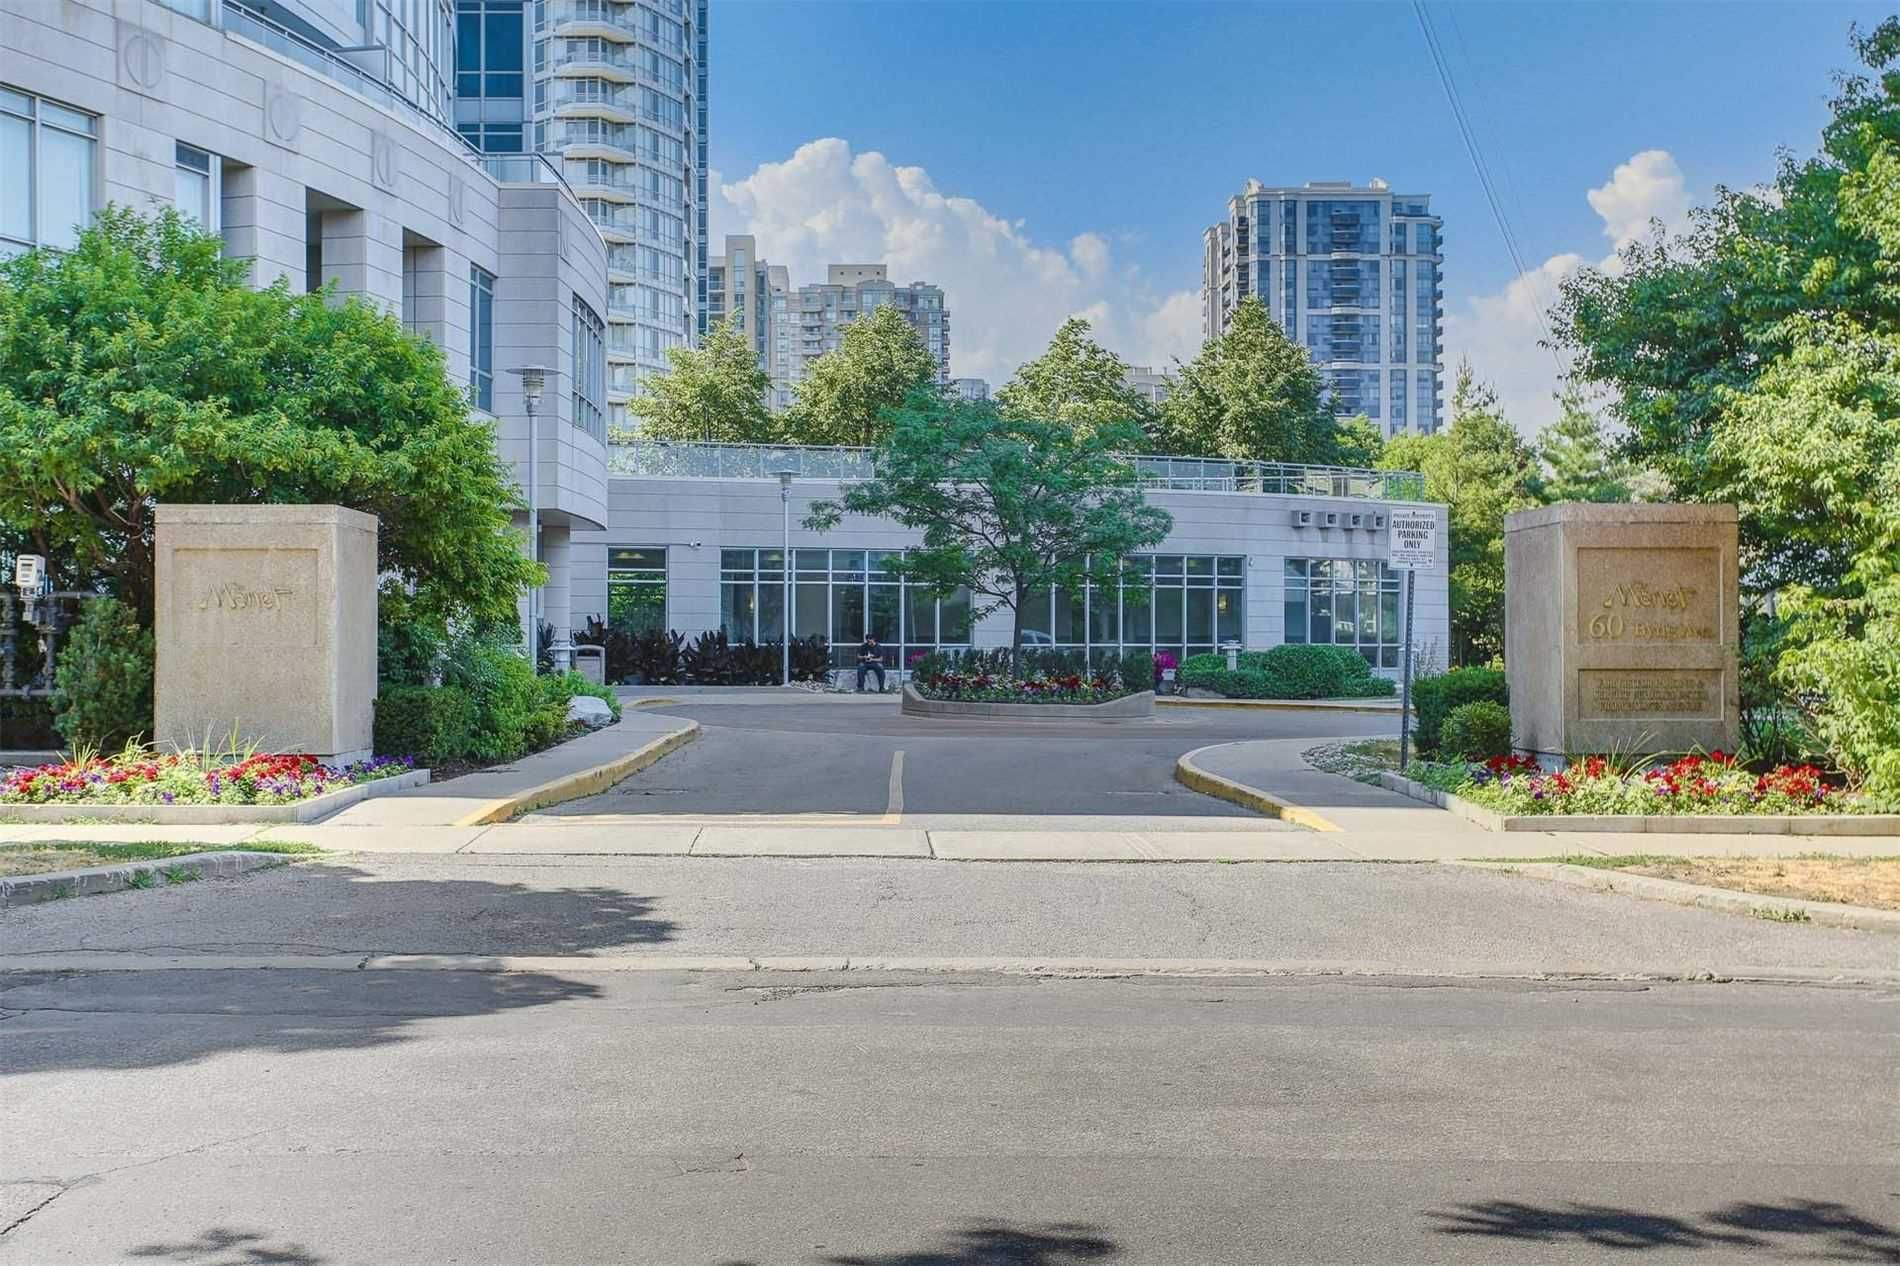 60 Byng Ave, unit 2409 for sale in Toronto - image #2